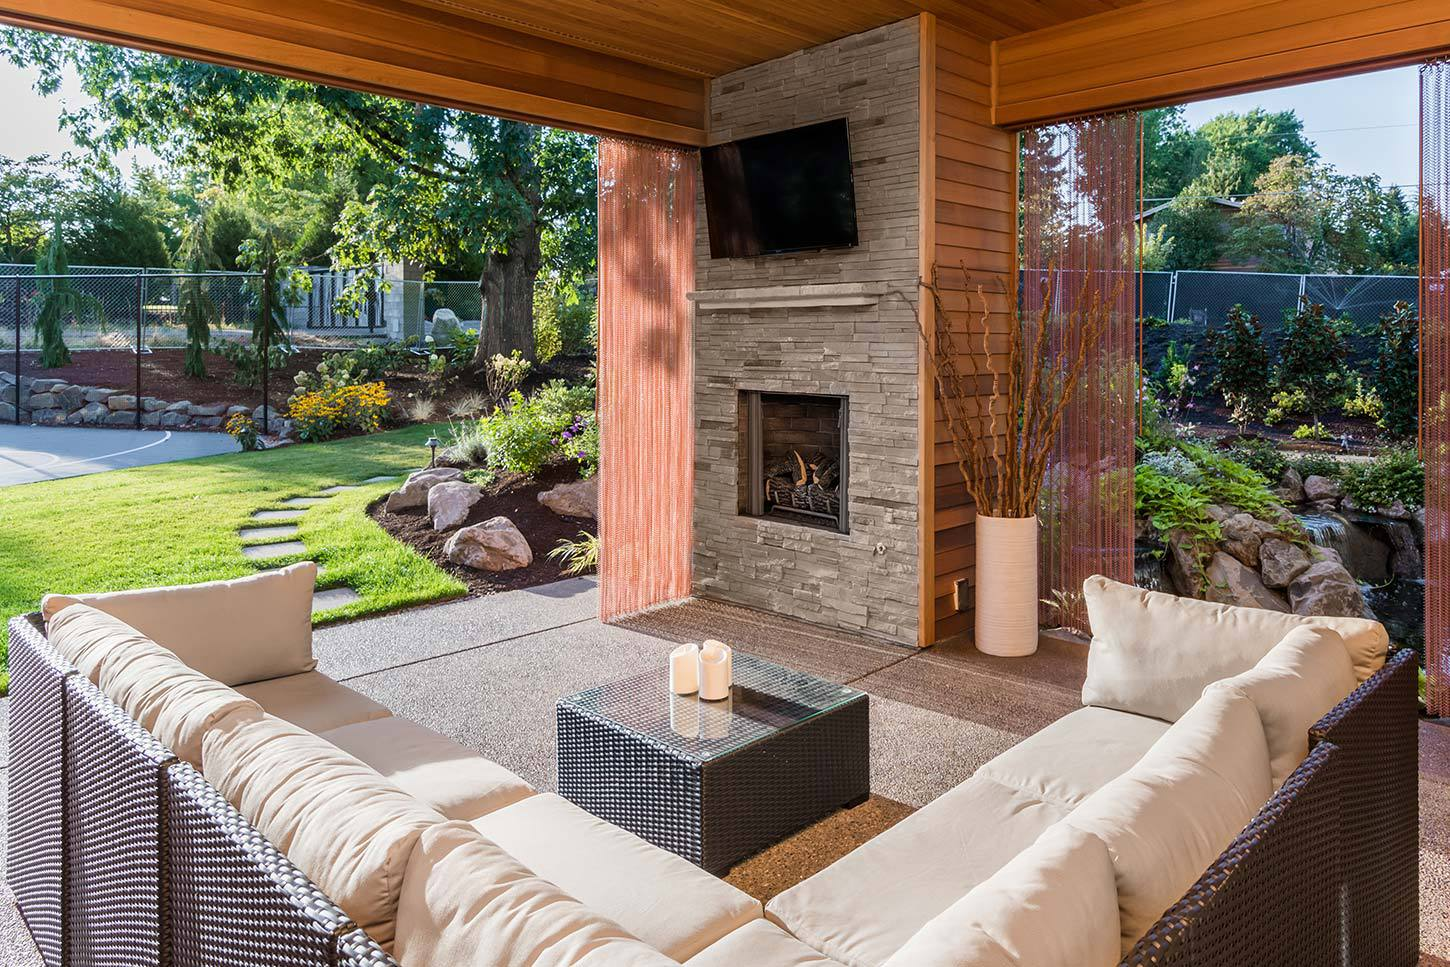 50 Best Patio Ideas For Design Inspiration For 2019: Modern